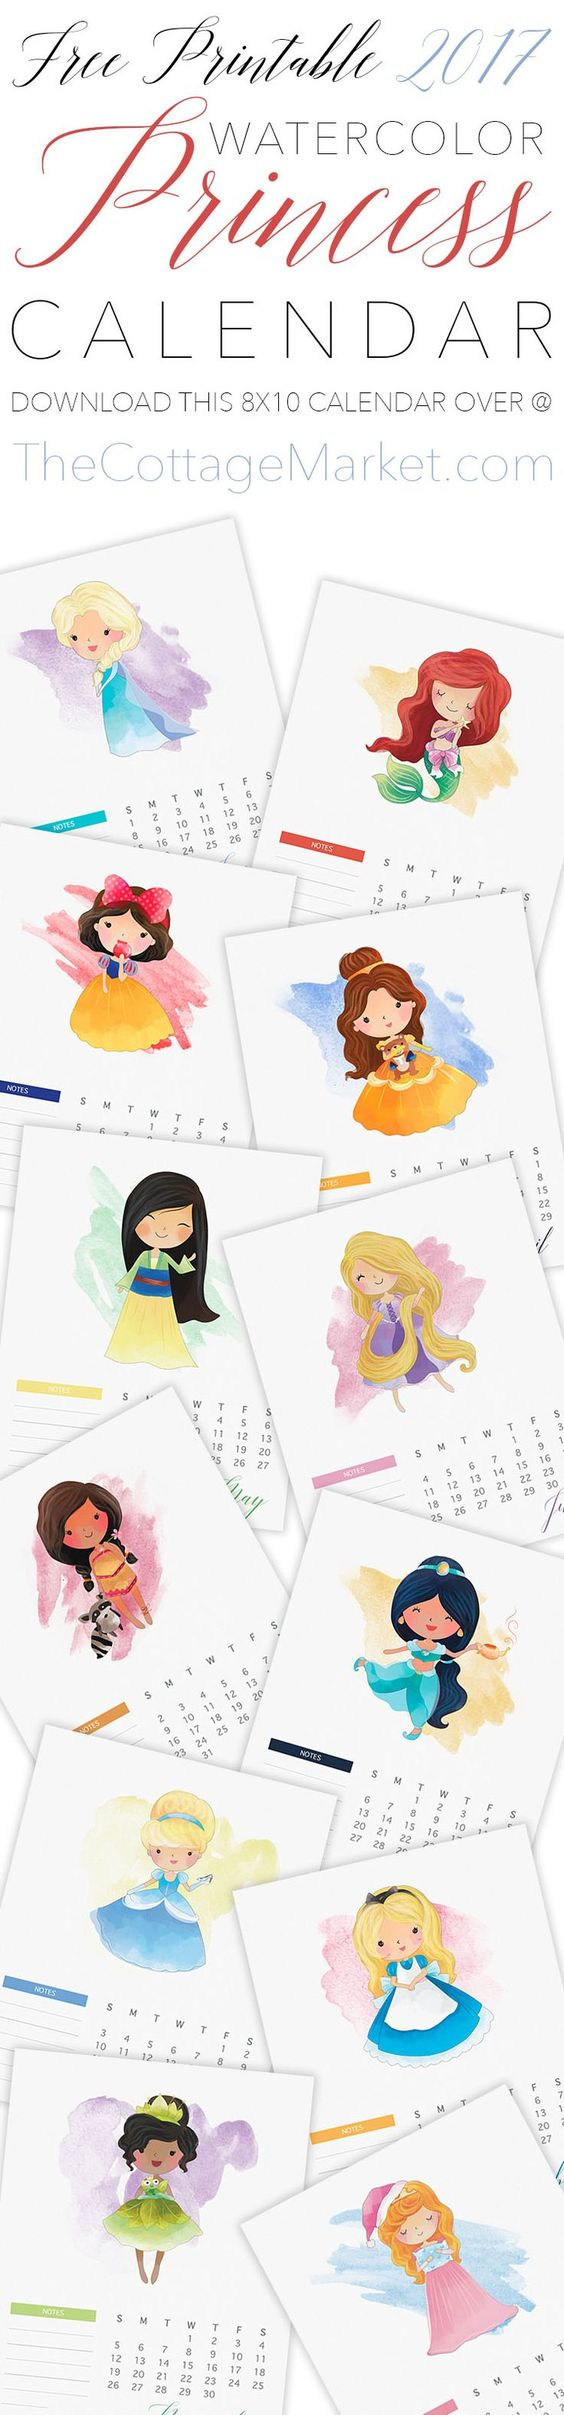 Disney Princess Calendar: